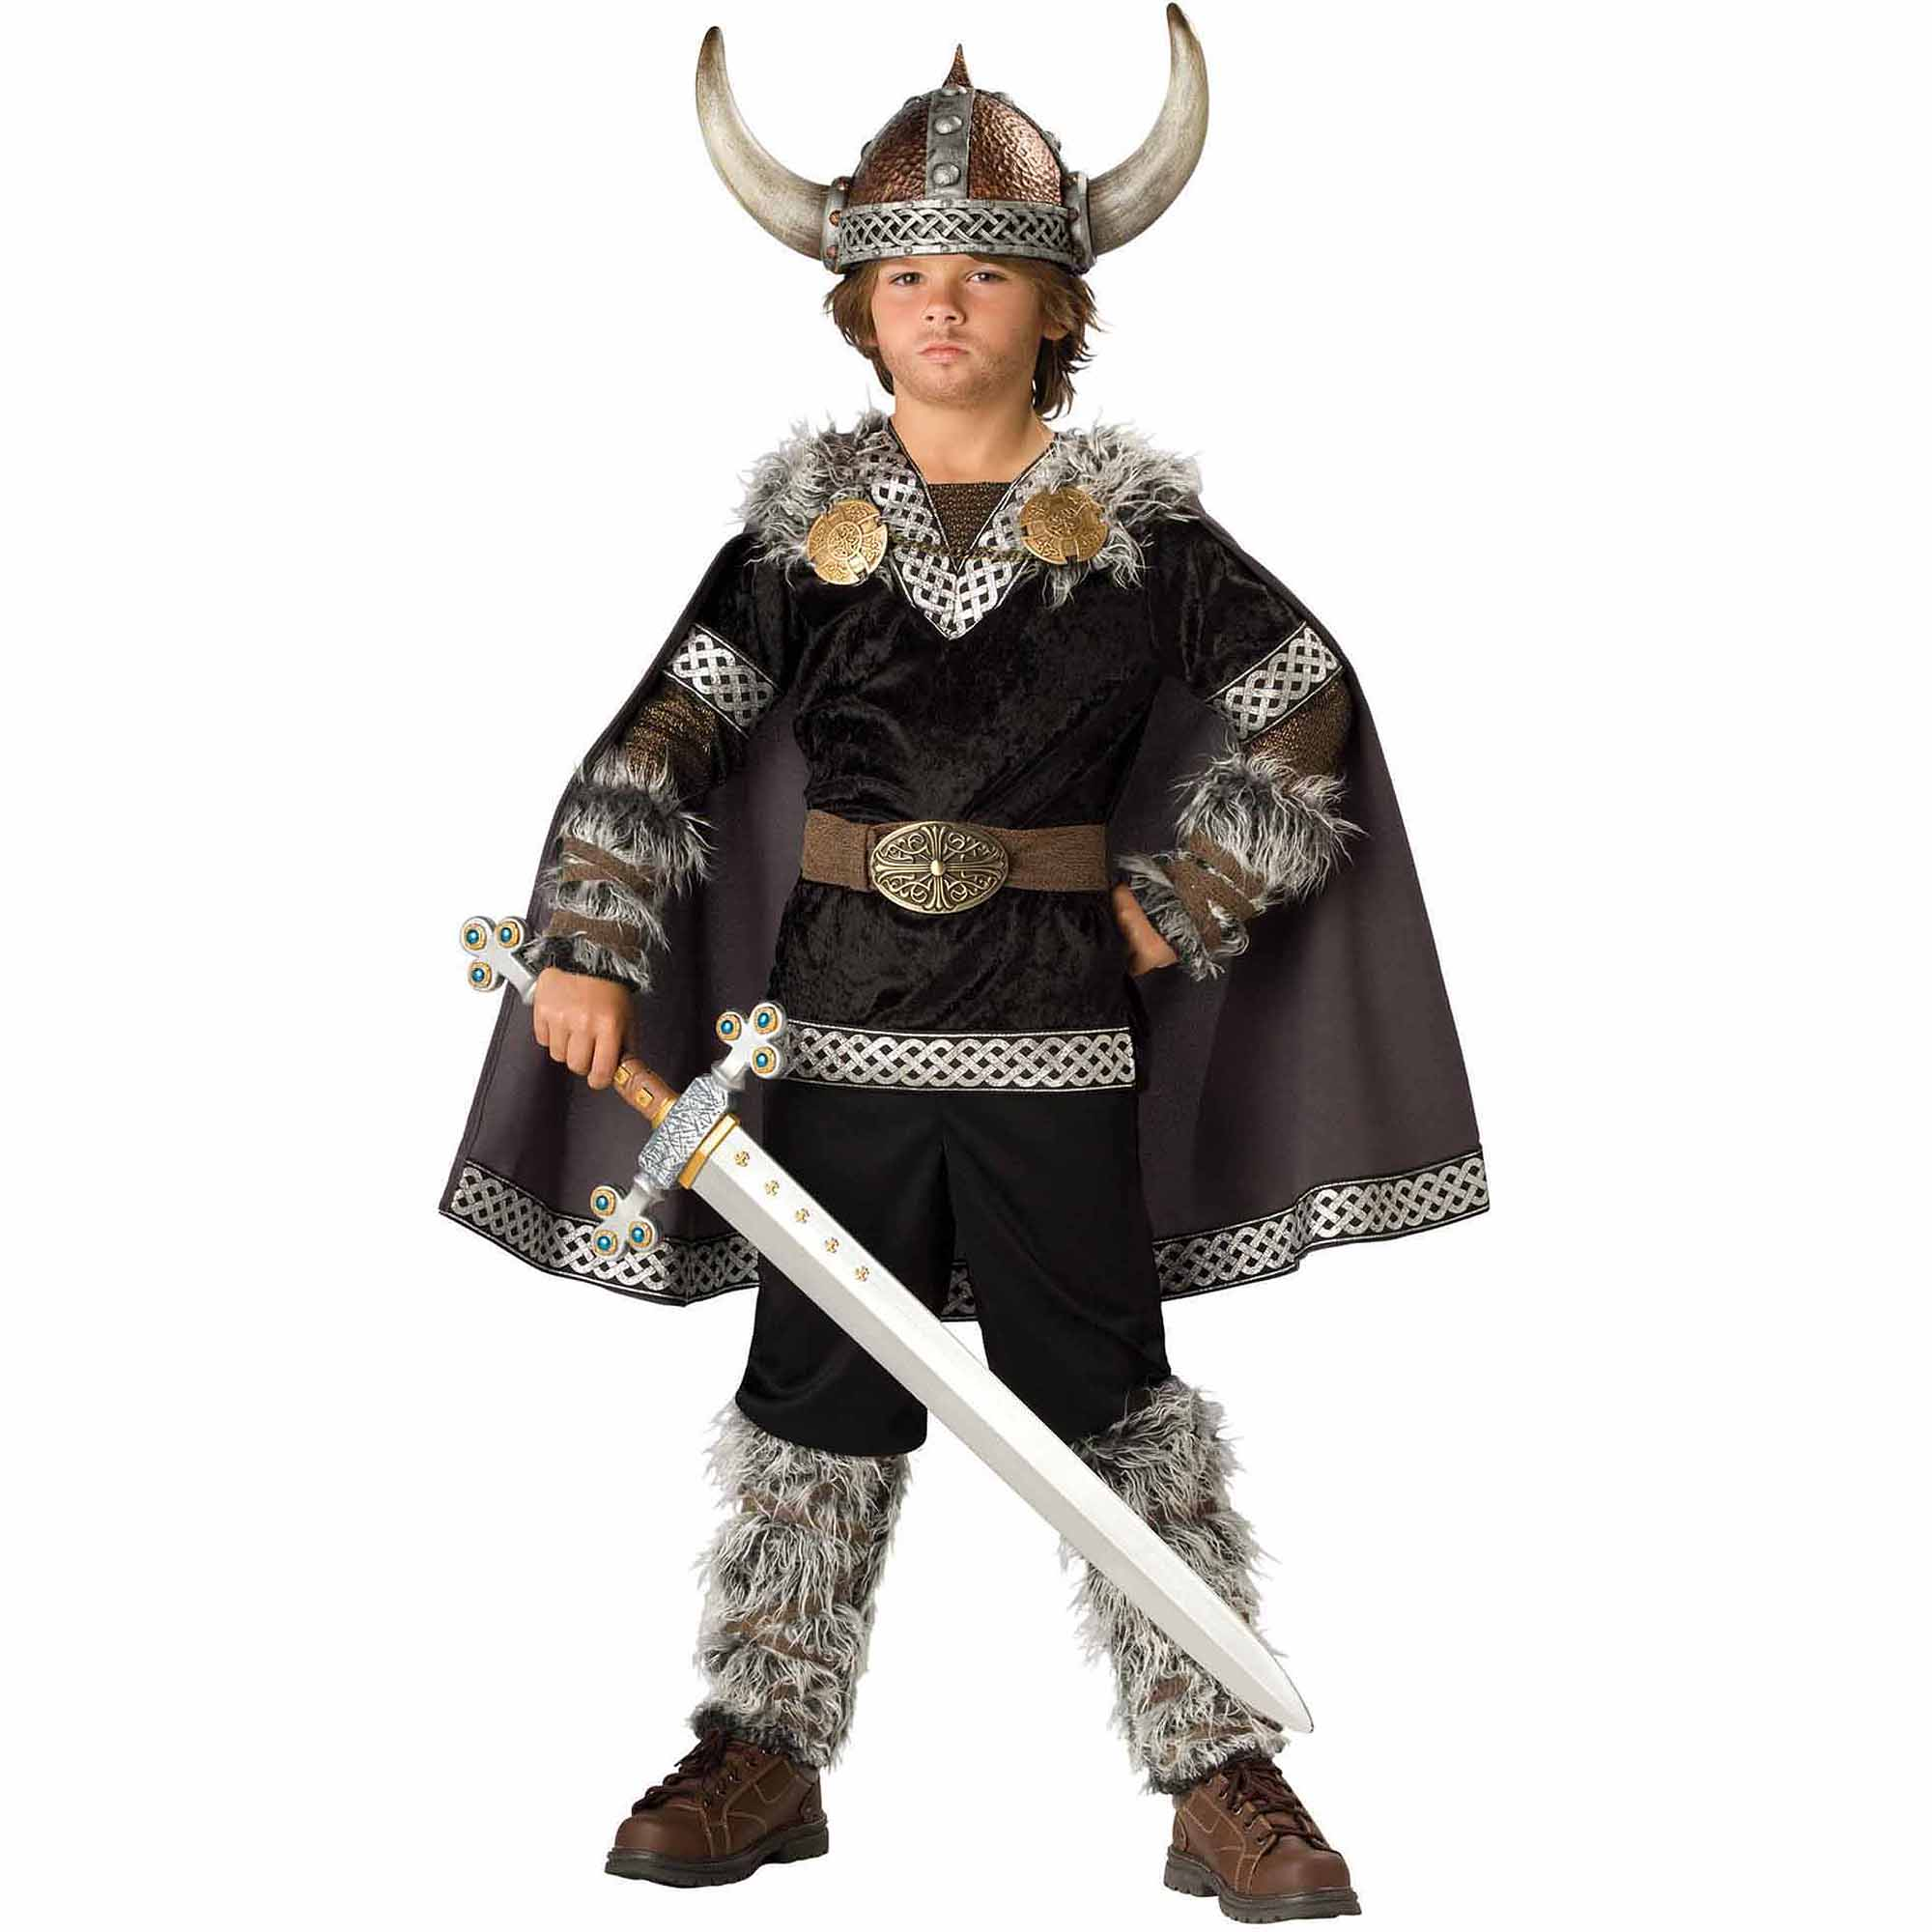 Super Deluxe Viking Warrior Boys Costume  sc 1 st  Walmart & Super Deluxe Viking Warrior Boys Costume - Walmart.com